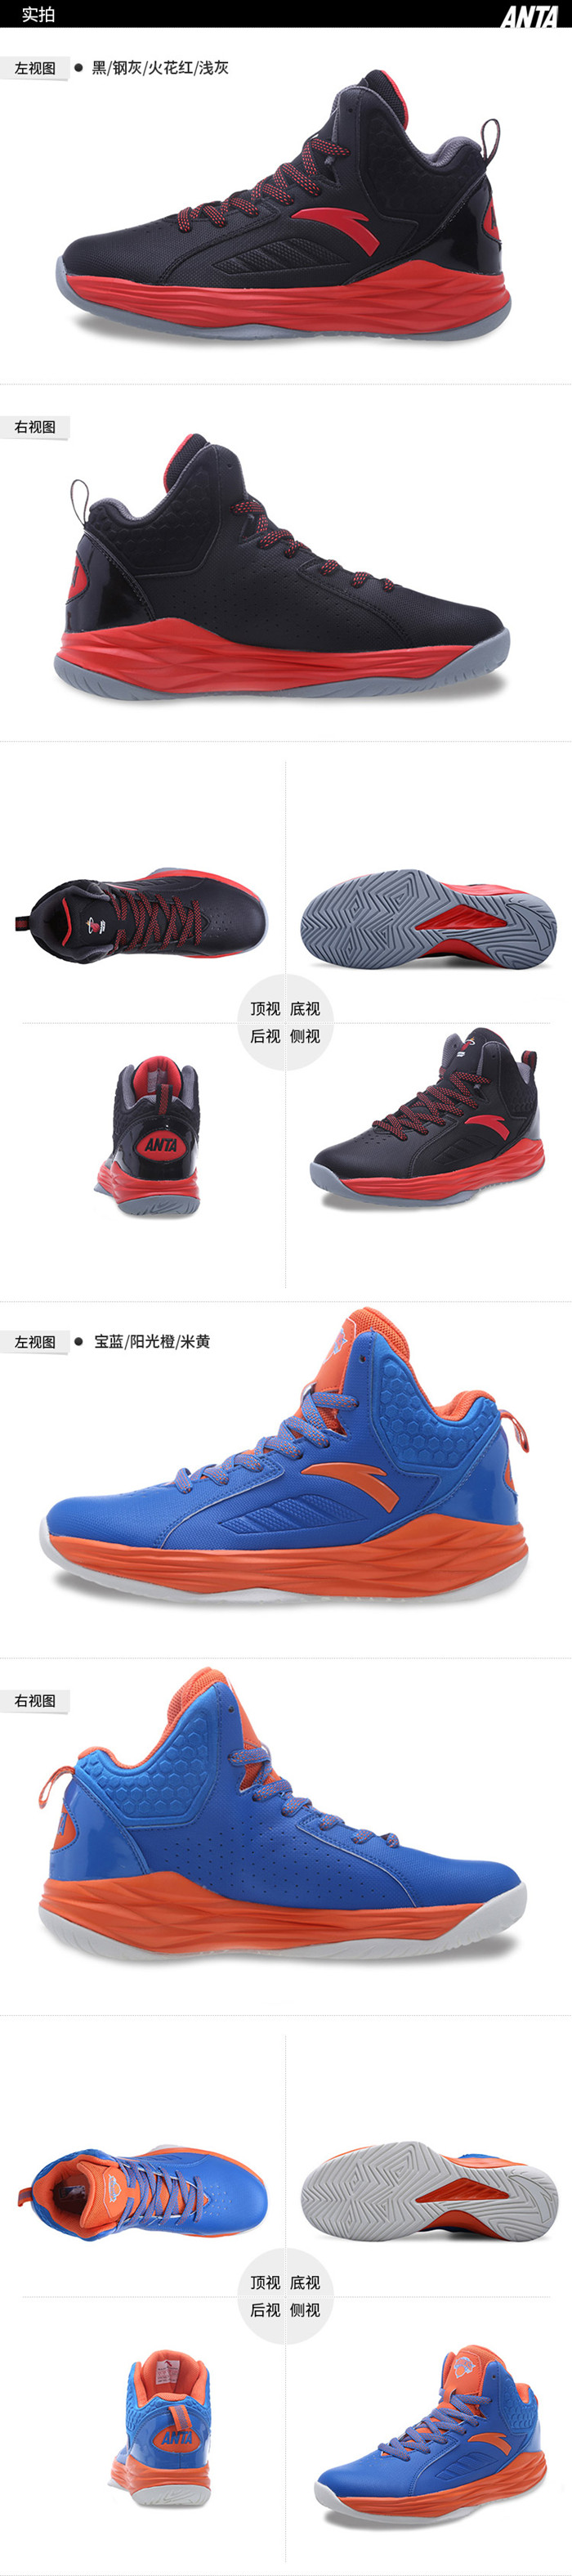 Anta Non-Slip Comfortable Professional NBA Basketball Shoes